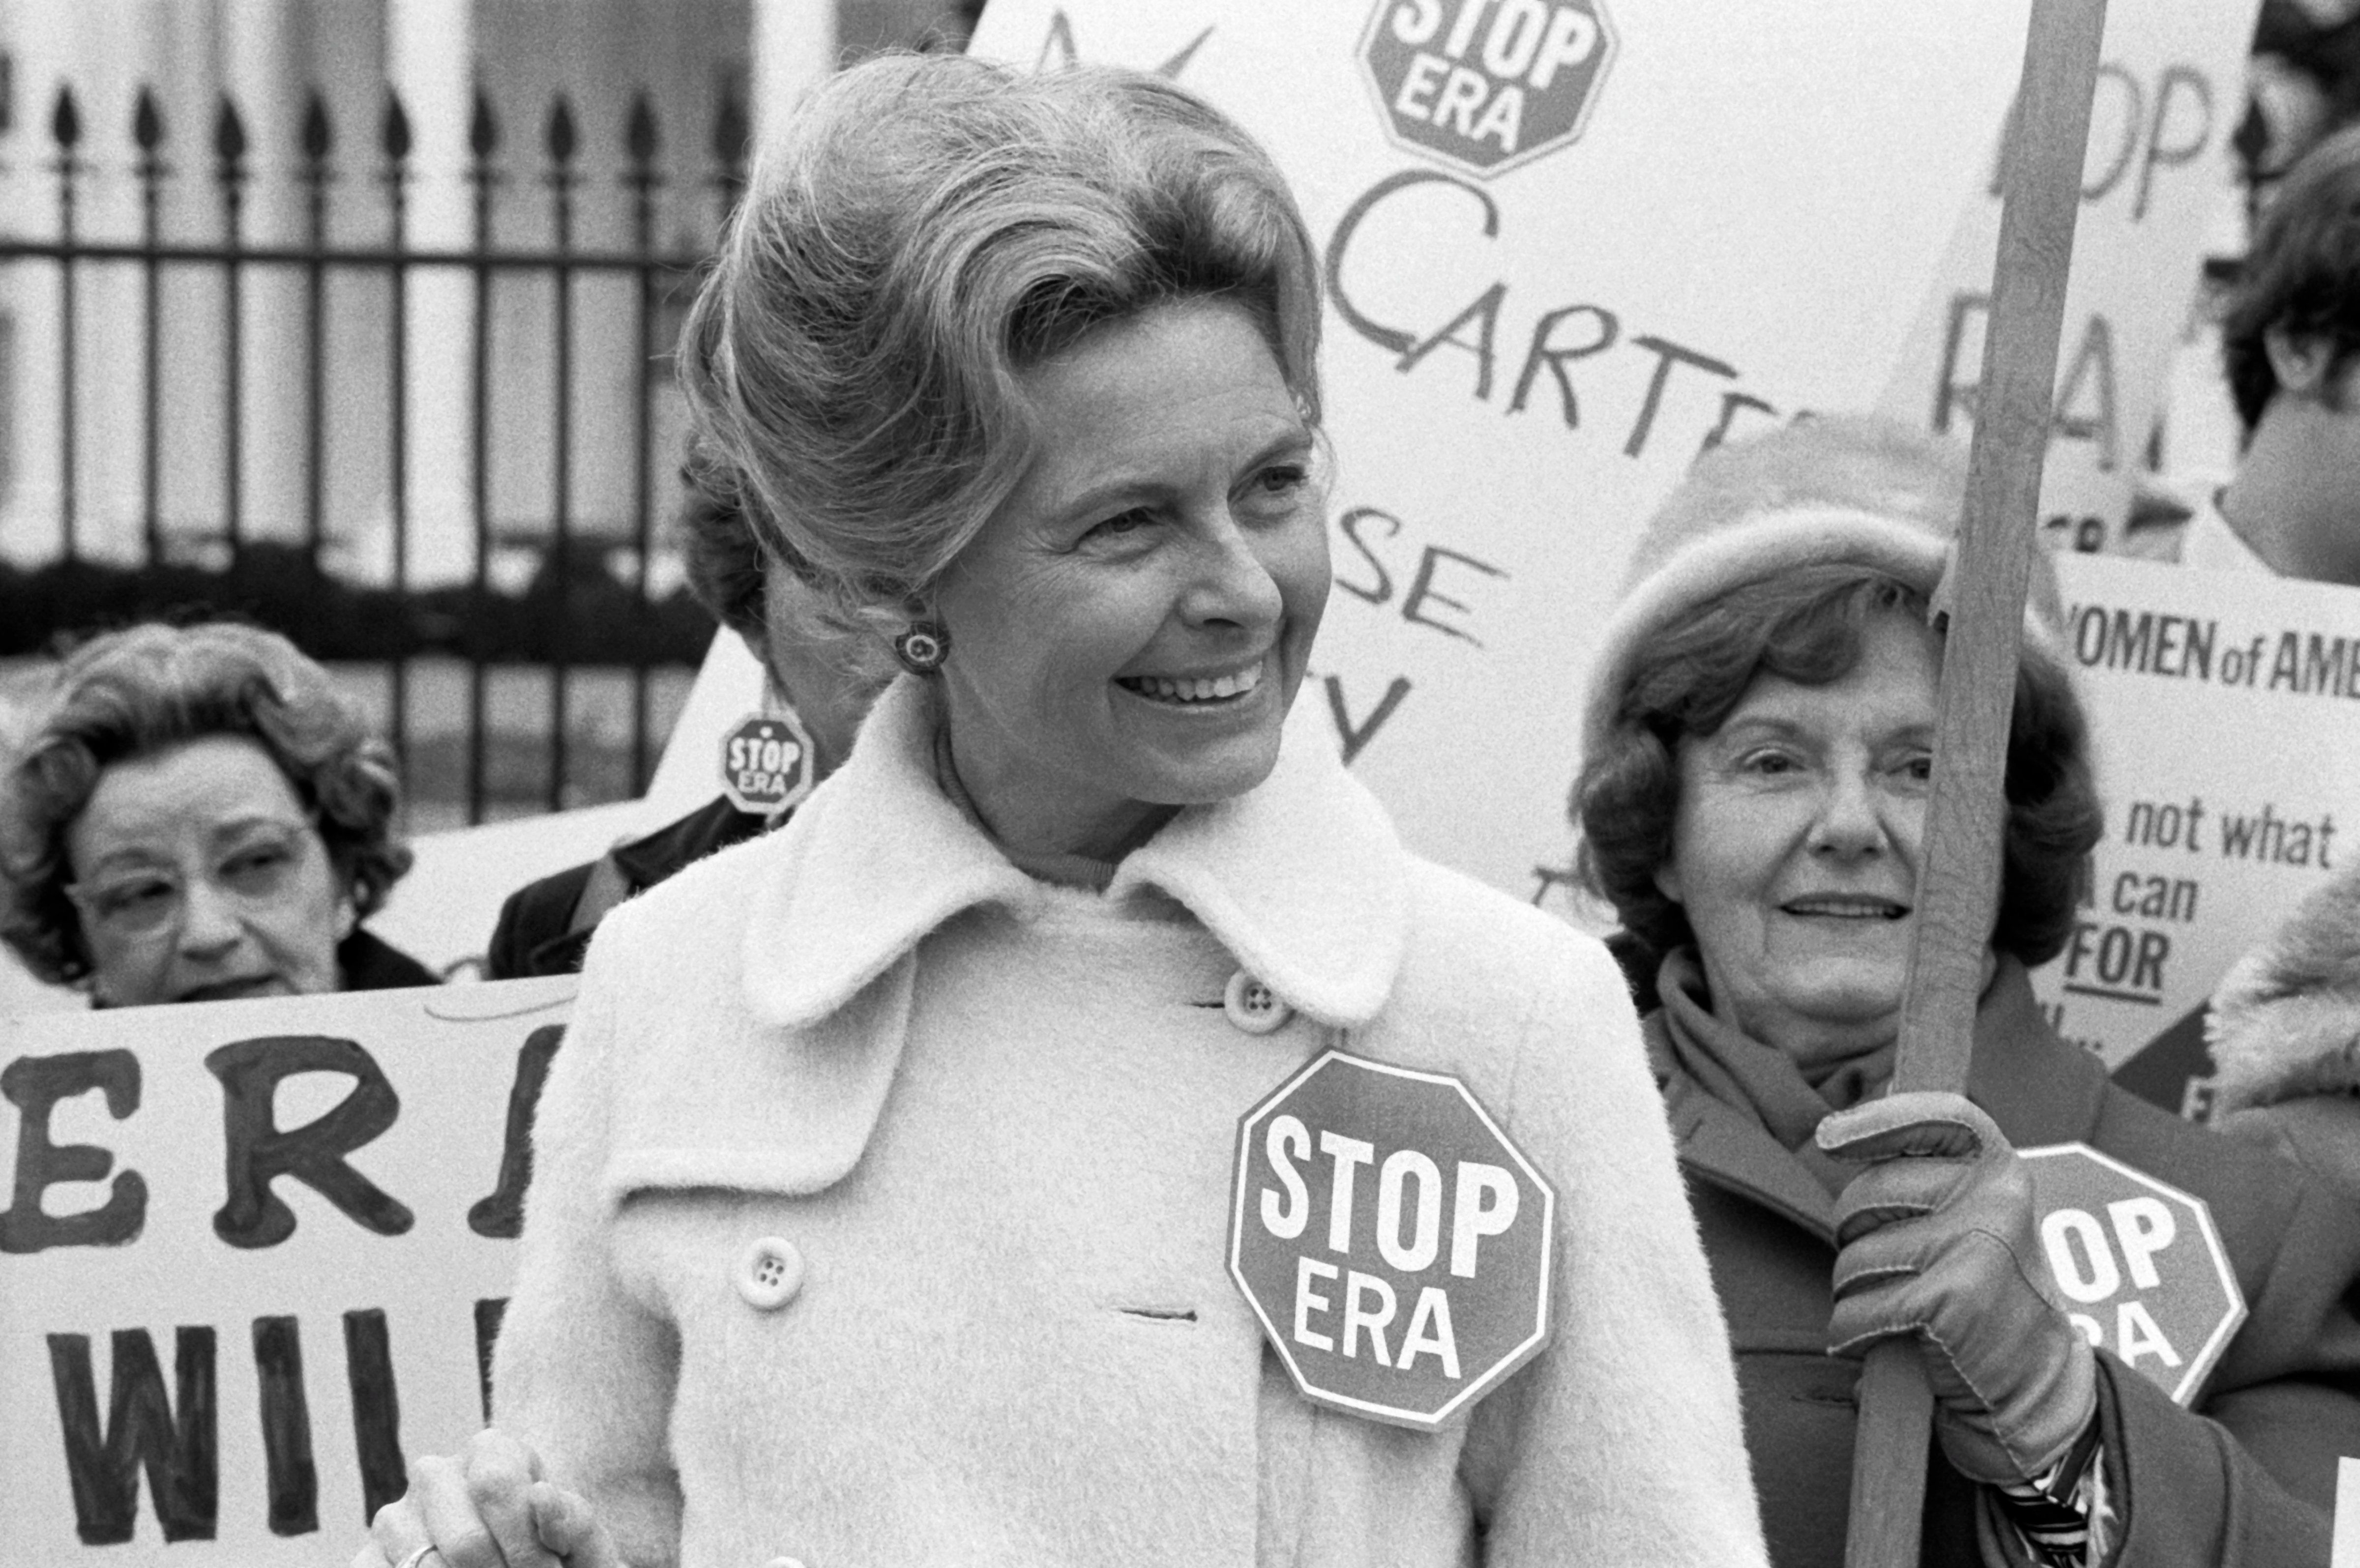 Phyllis Schafly and other activists protested against the Equal Rights Amendment outside the White House in February 1977.